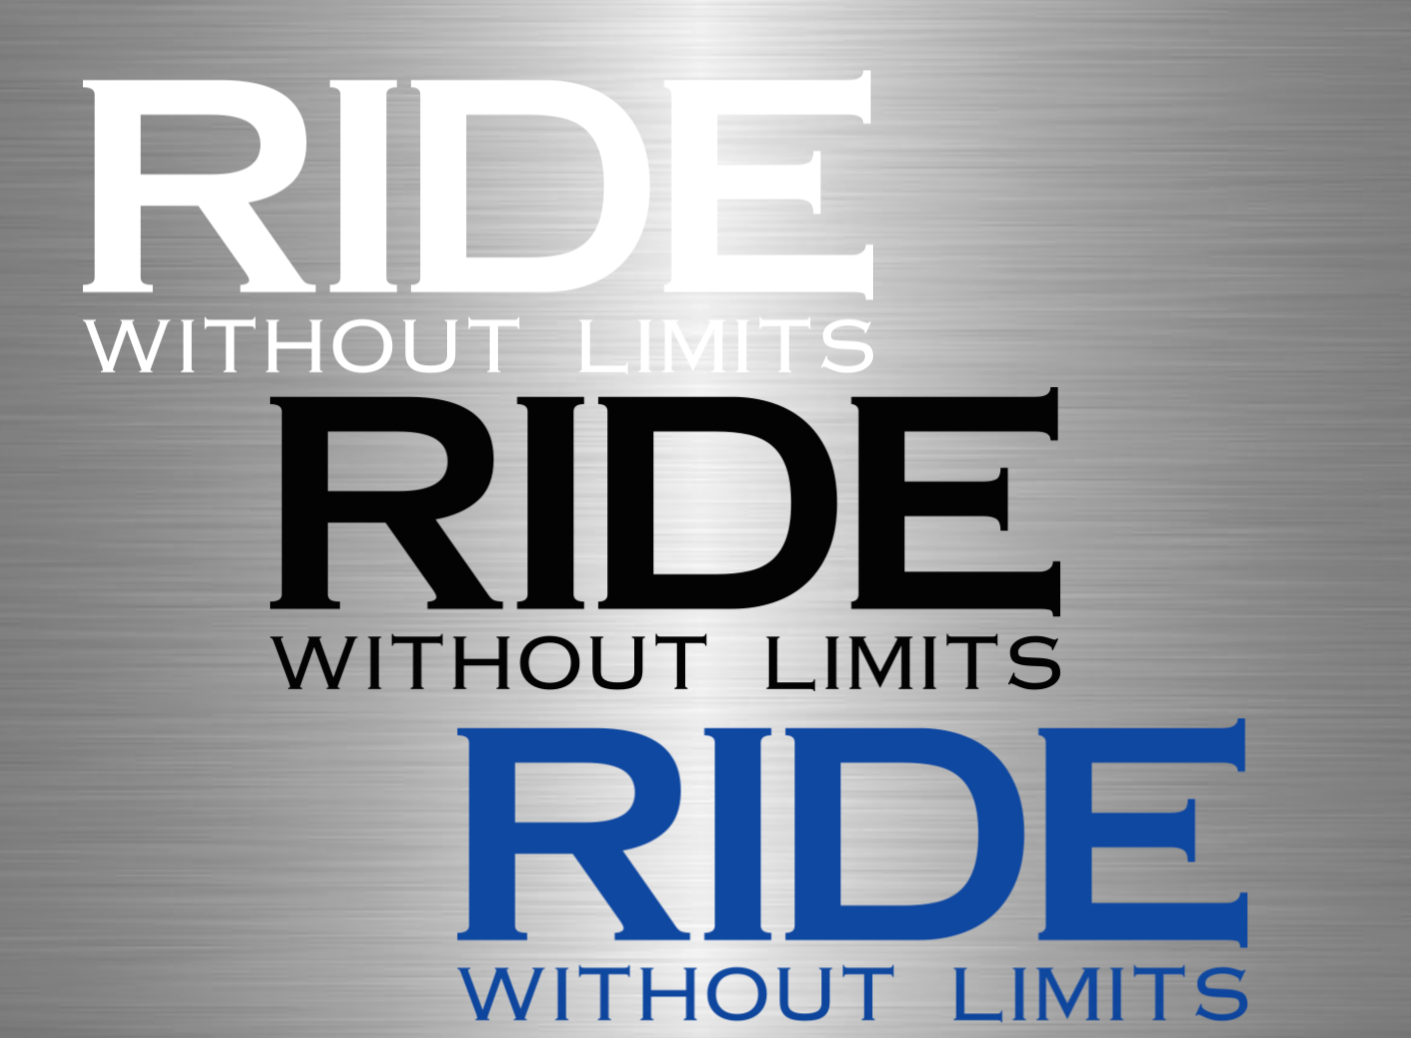 RIDE Without Limits Vinyl Decal - Large